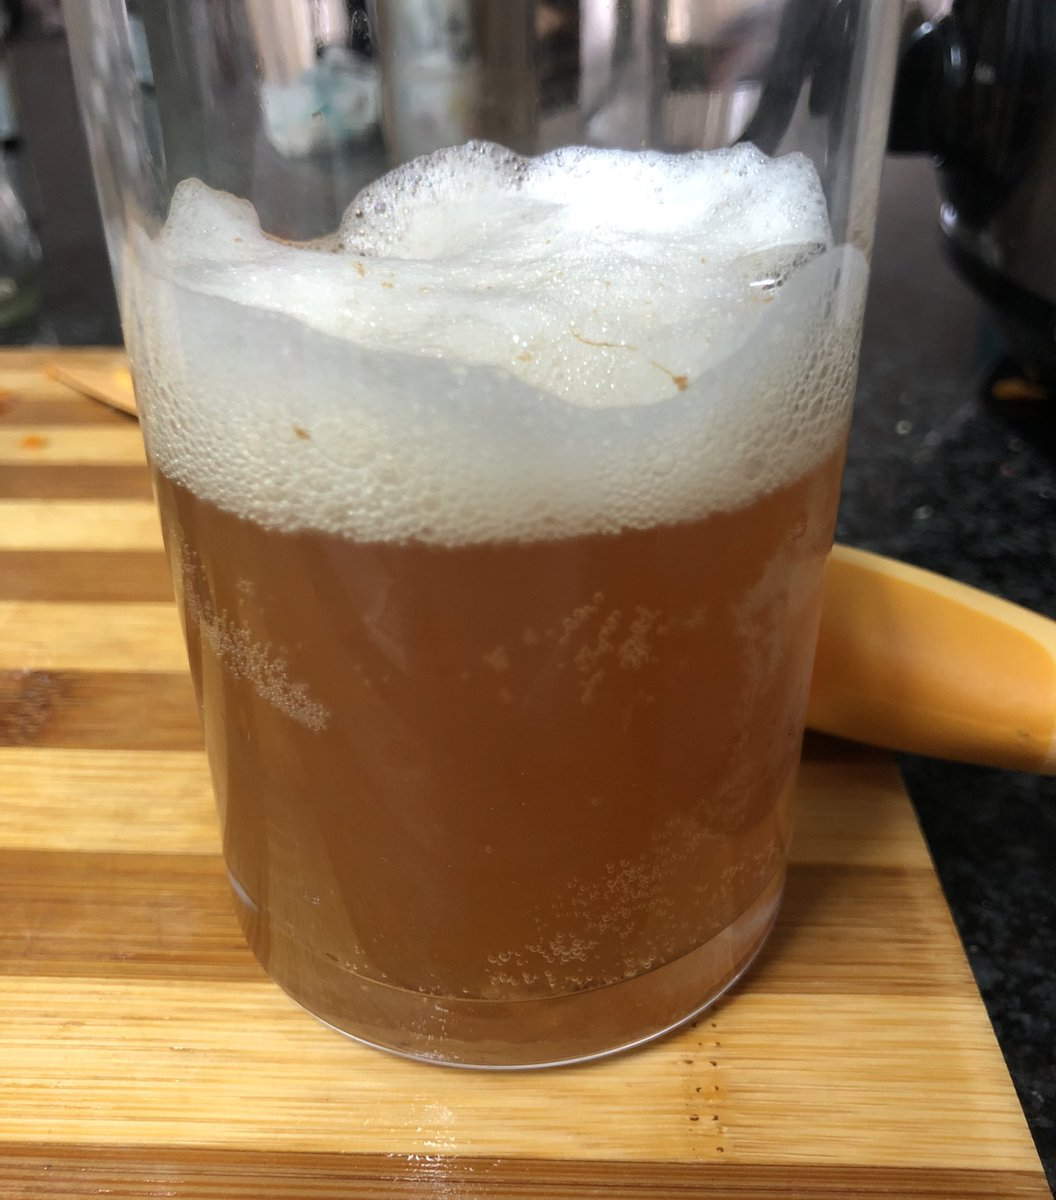 If you add a citrus fruit to your kombucha brew you can accidentally make beer pic.twitter.com/DV6fTgKm1Q